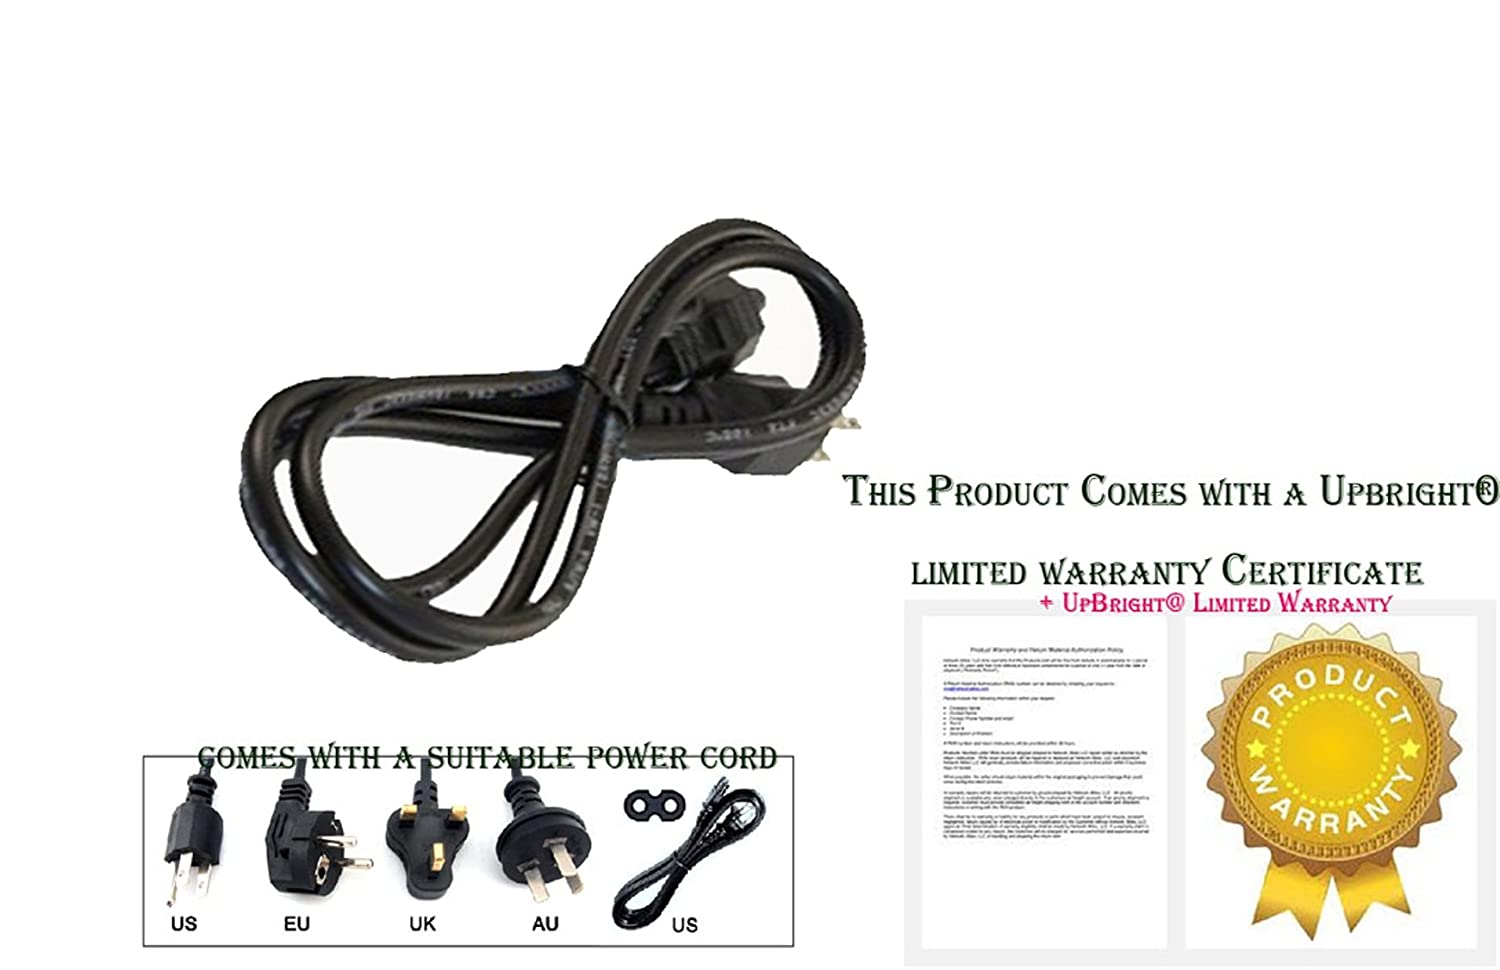 AC Power Cord Cable For SANSUI SLED1953W SLED2453W CEL758B SLEDVD226D SLED1945